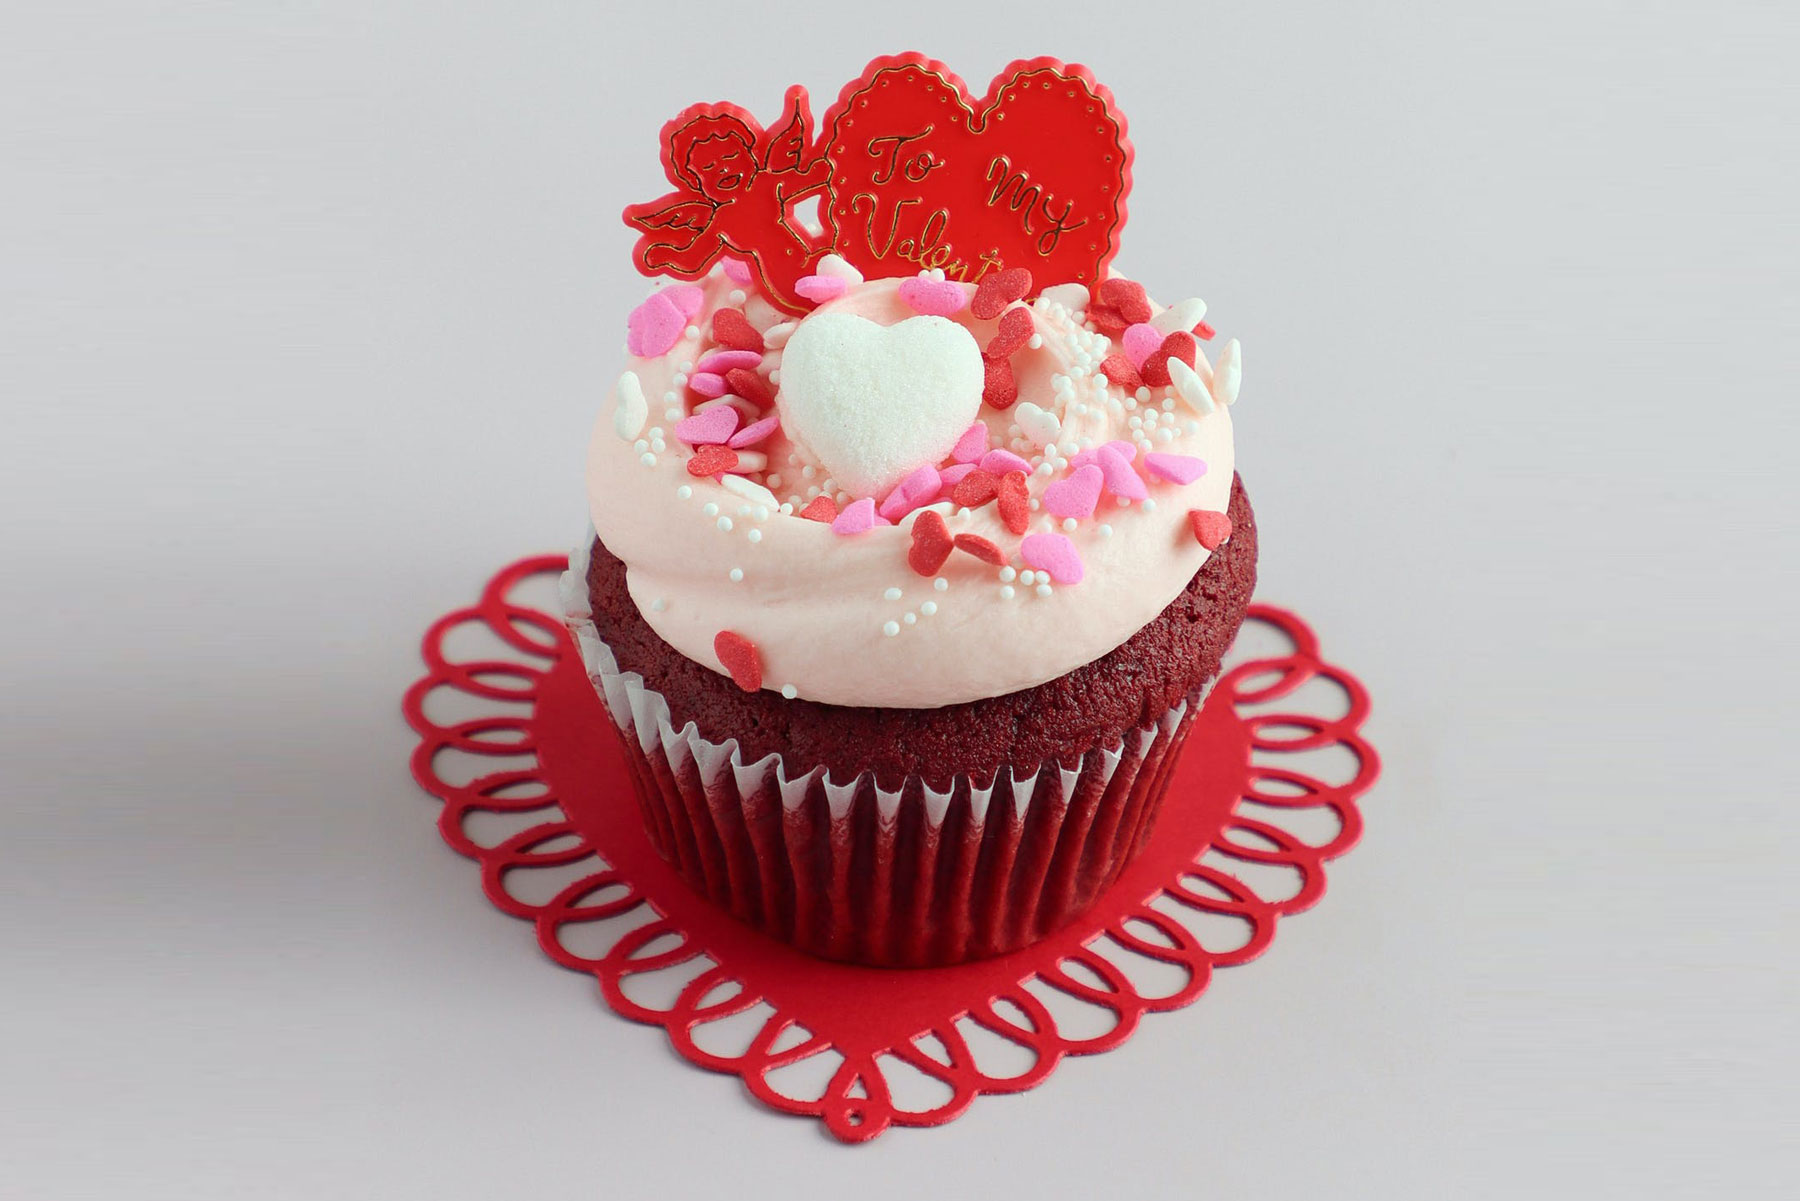 Red velvet cupcake with pink and red sprinkles